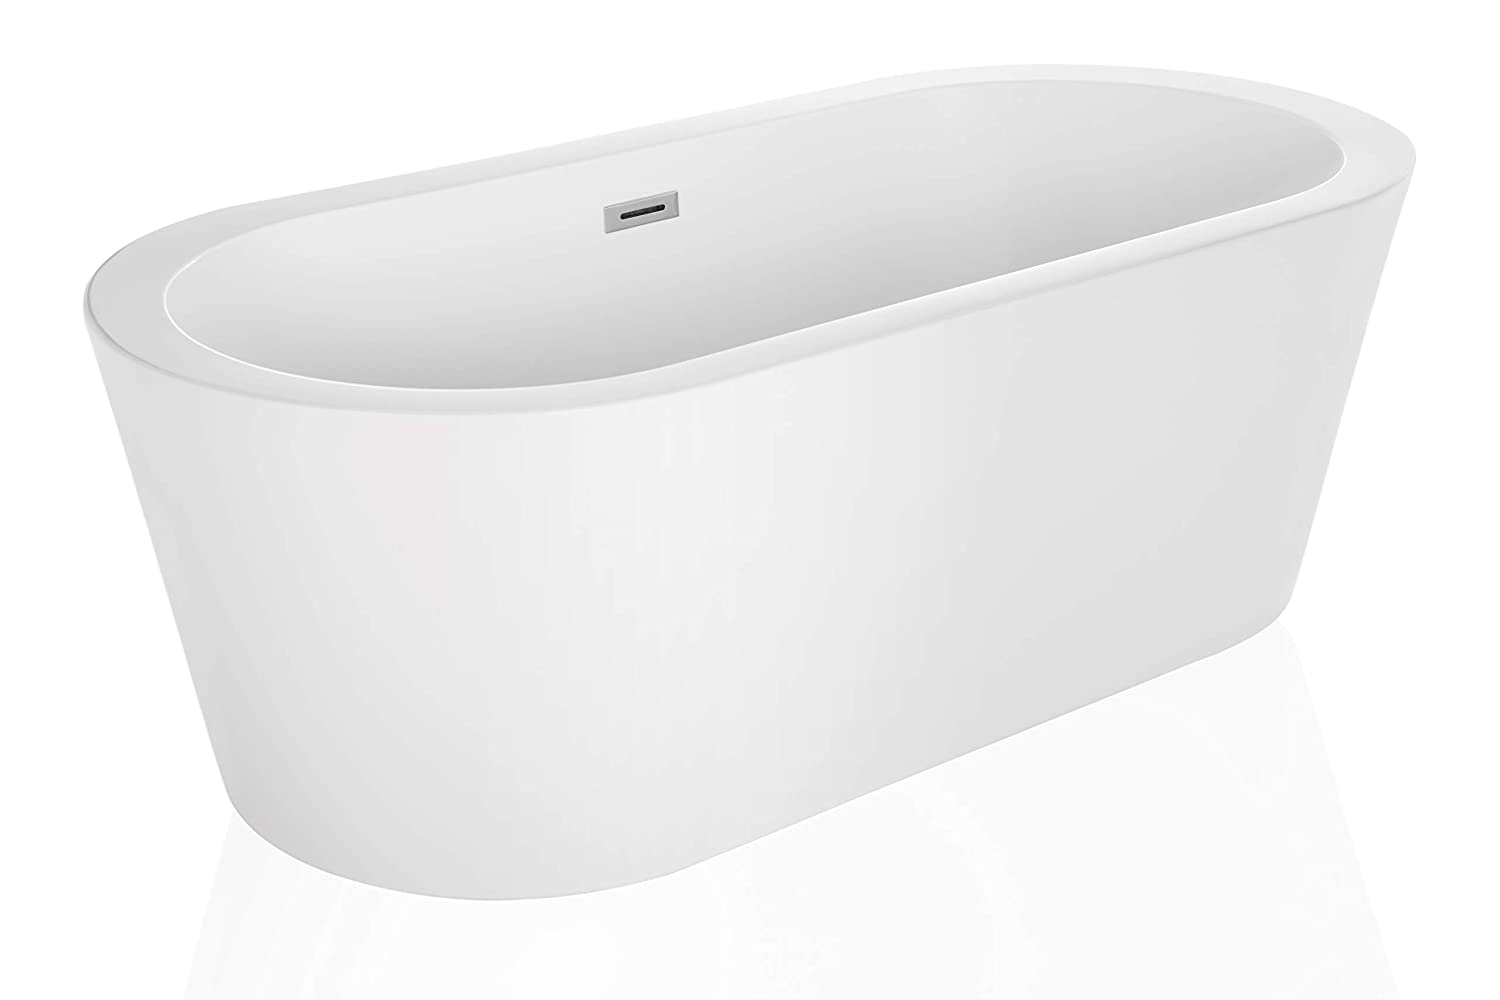 Bon Tubs Pro Made In USA Modern Relaxing Freestanding Bathtubs Stand Alone  Acrylic SPA Hot Tubs TP 559 59 Inch White     Amazon.com